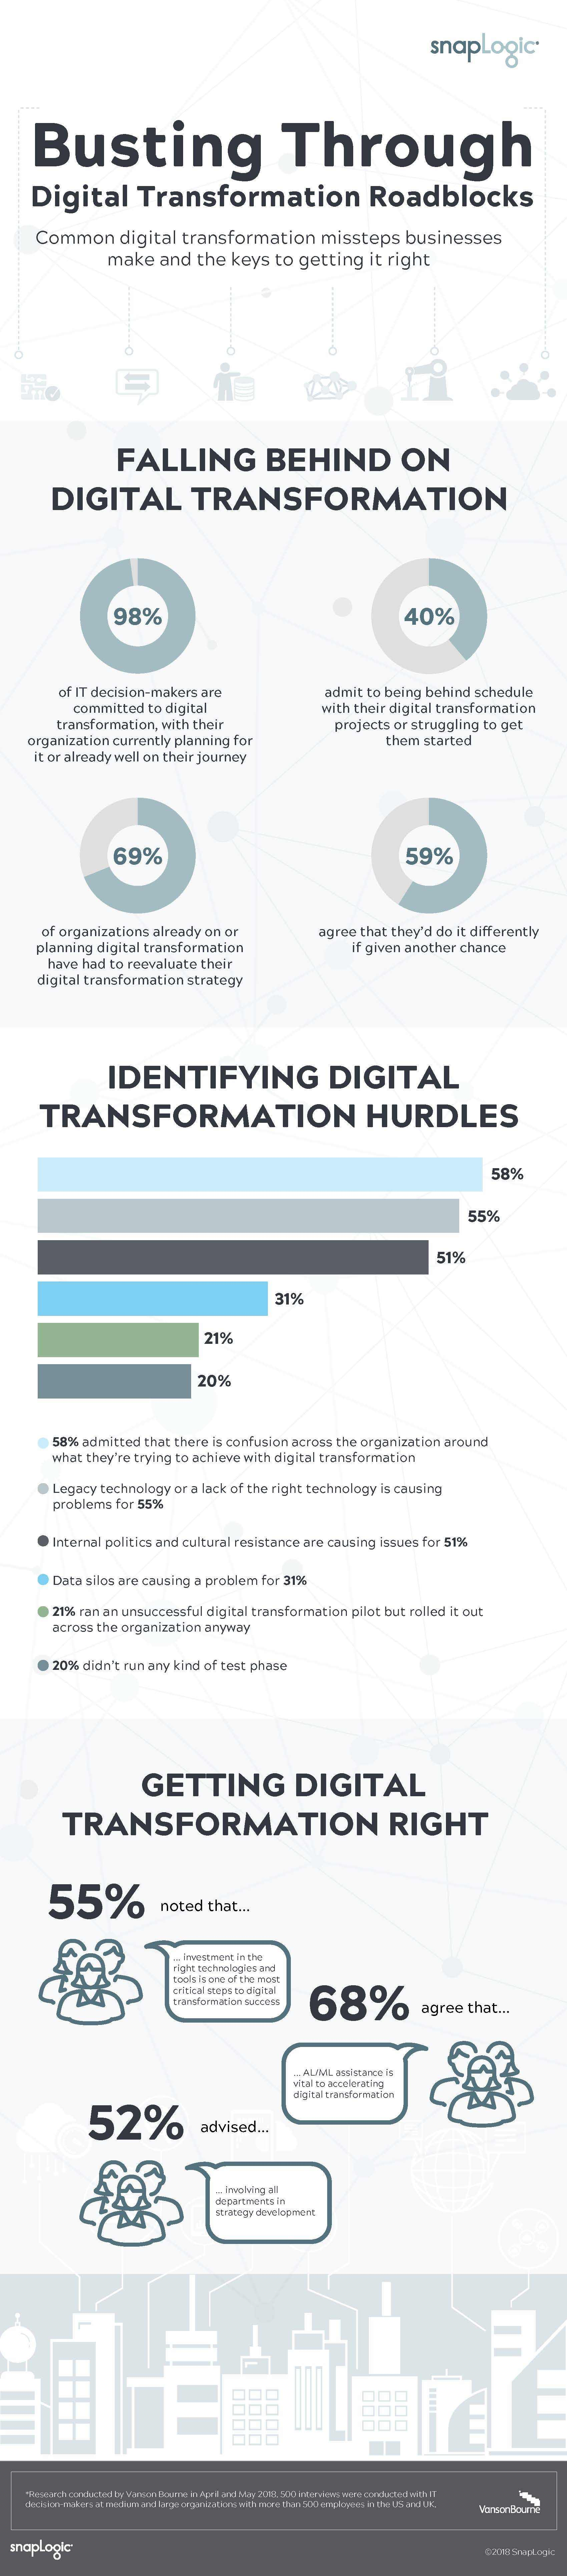 https://mms.businesswire.com/media/20181107005204/en/688959/5/Infographic_Digital_Transformation_Research_2018_FINAL.jpg?download=1